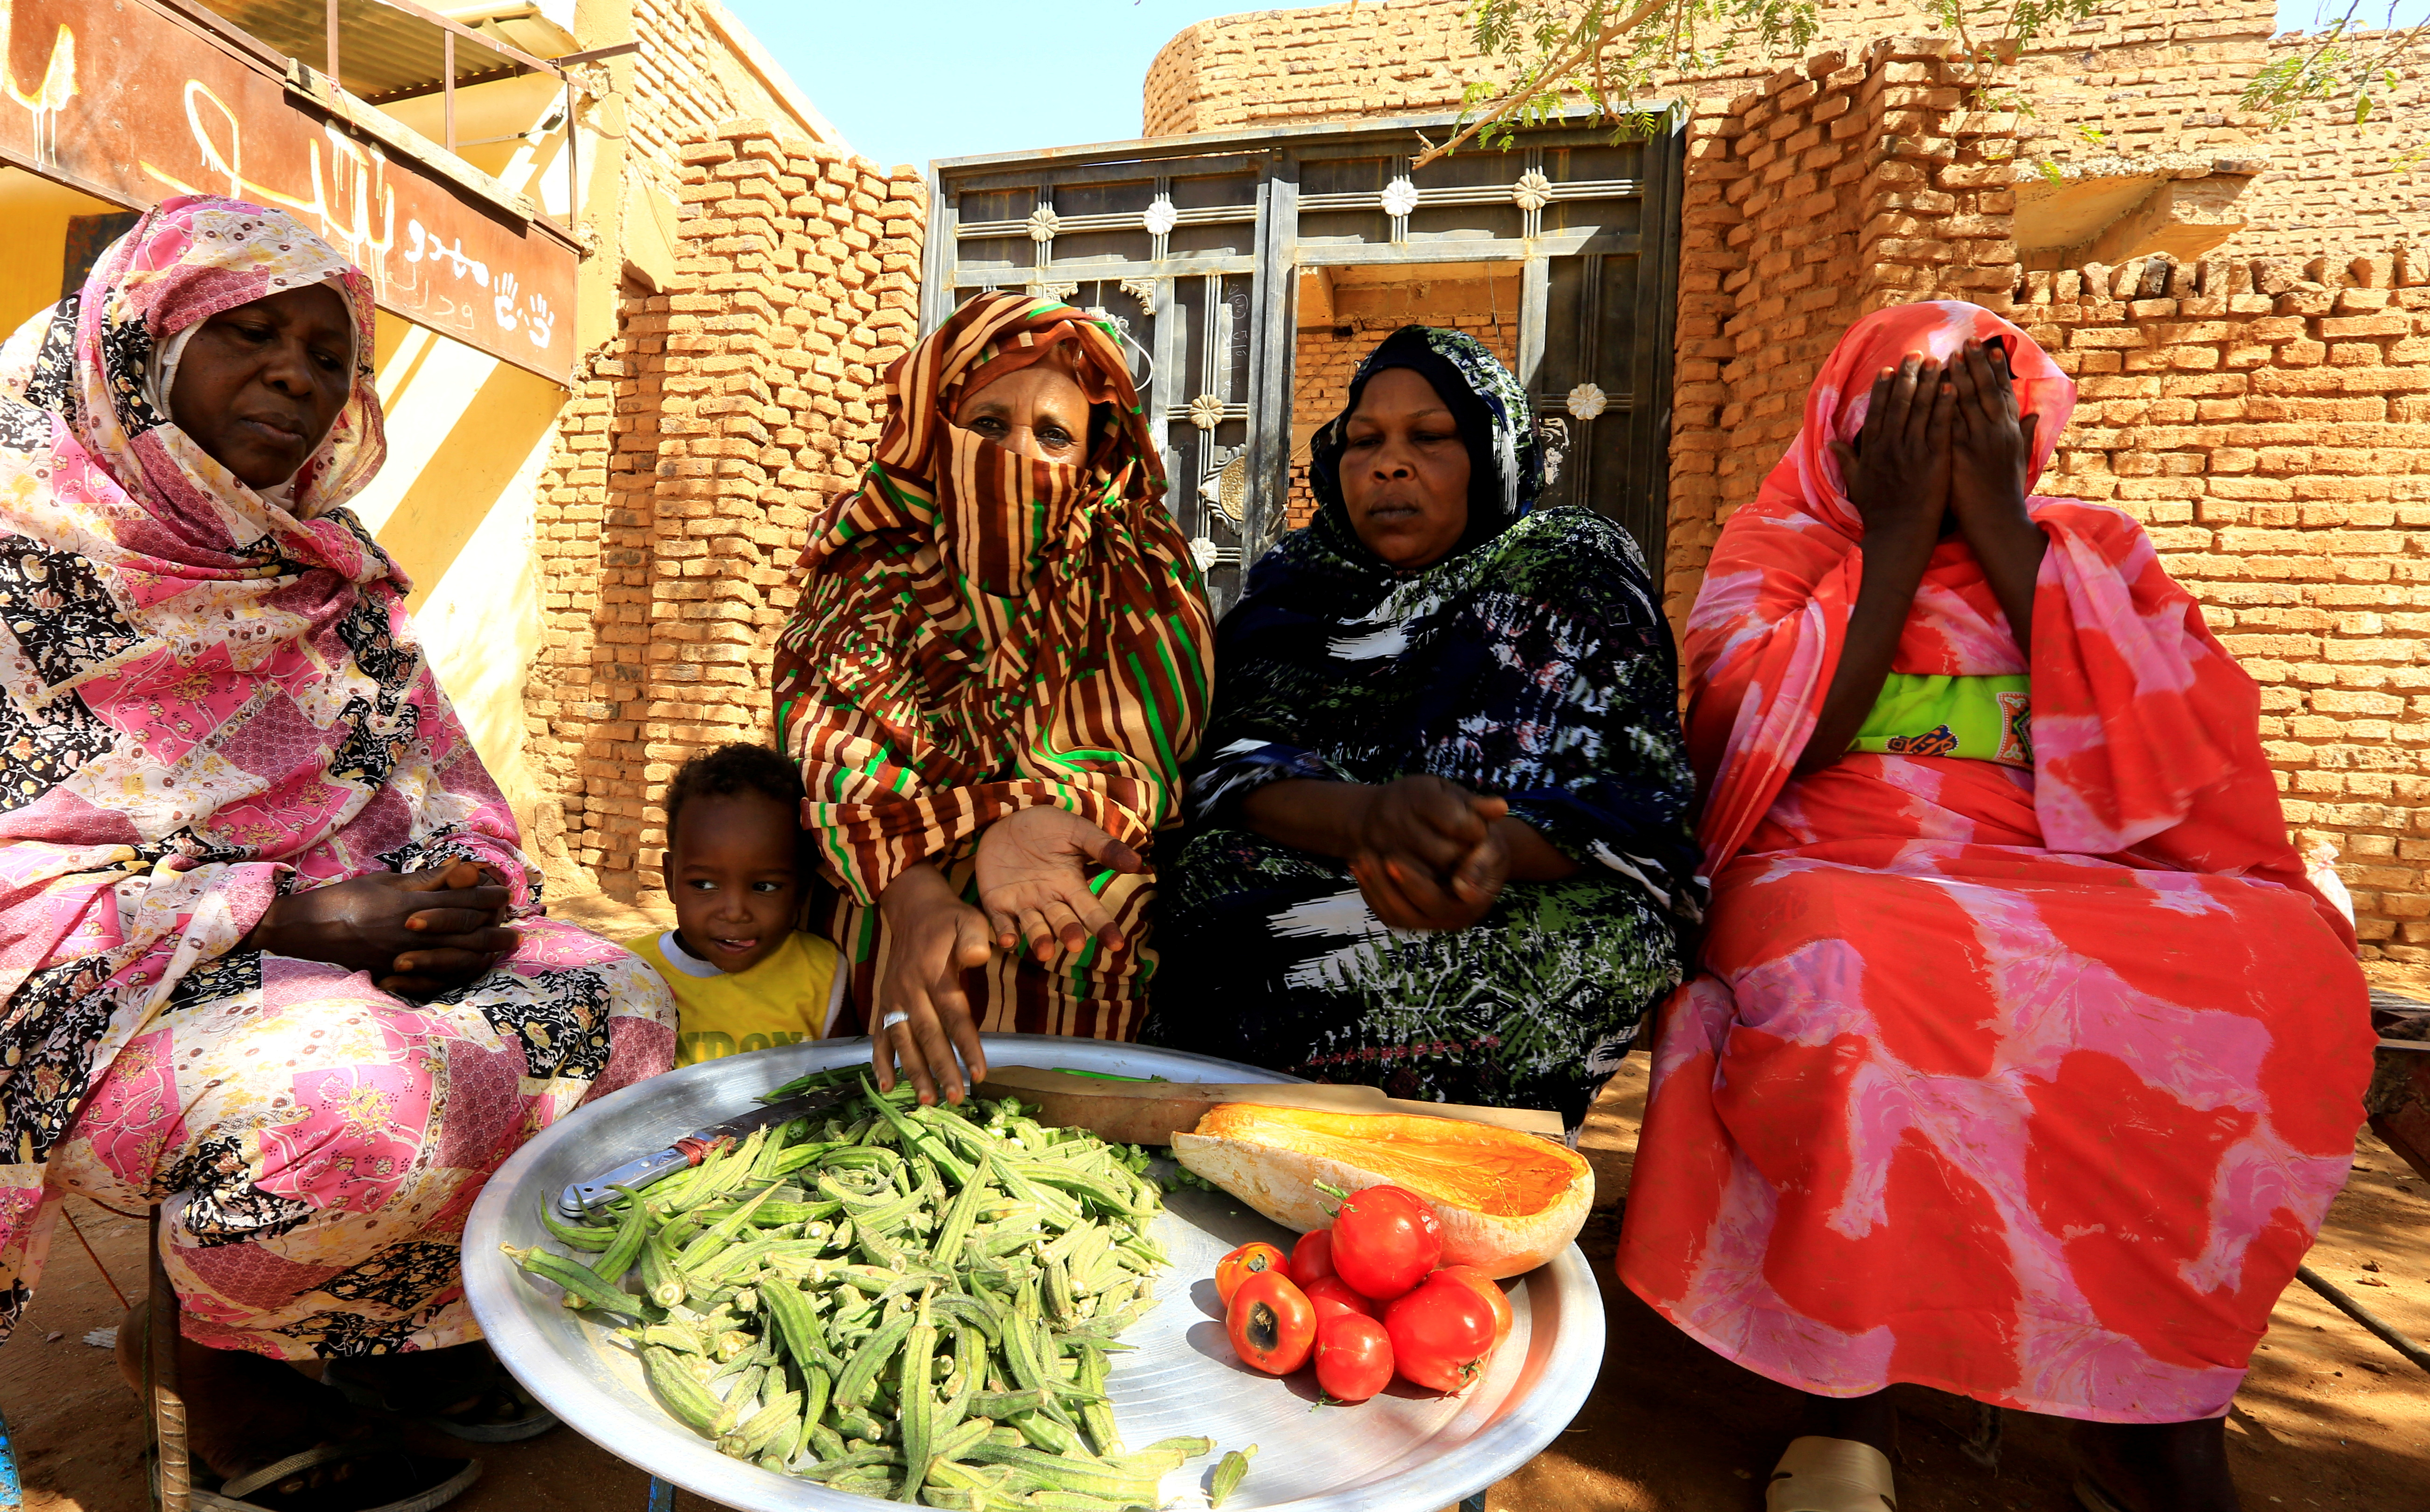 Women sit together as they prepare food for their families in Khartoum north, Sudan,March 2, 2021.  REUTERS/Mohamed Nureldin Abdallah/File Photo